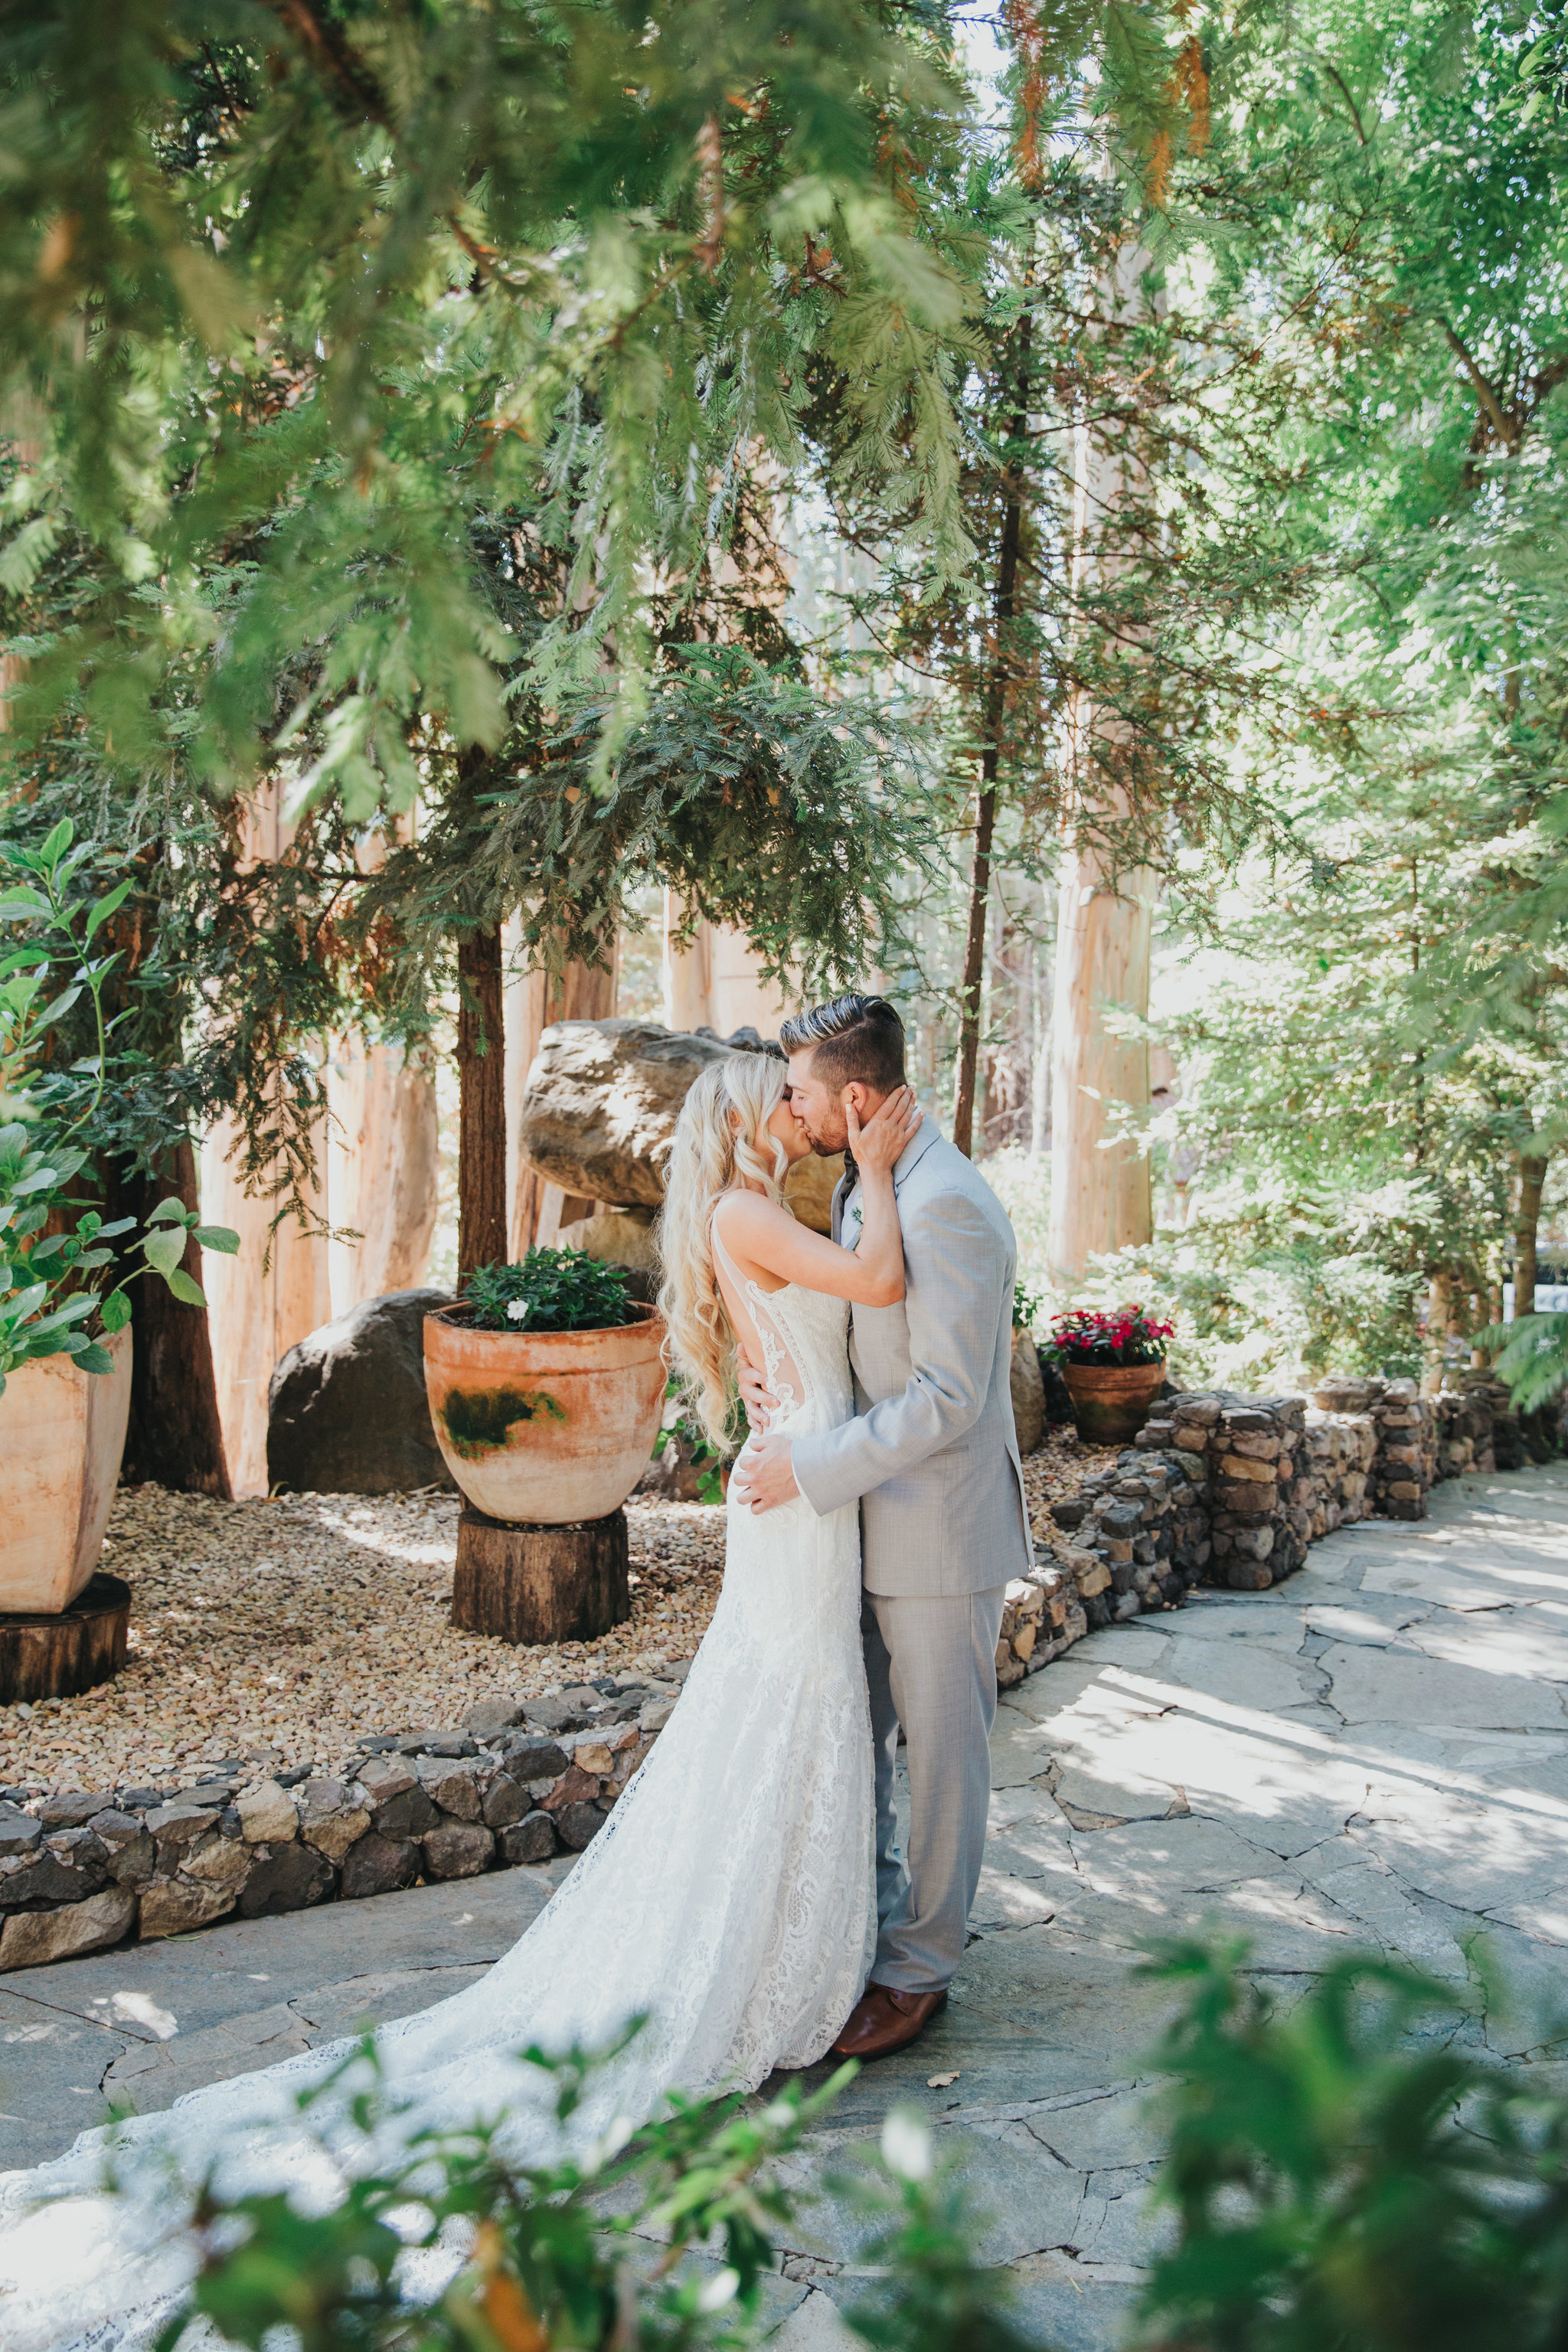 First Look Kiss | Calamigos Ranch